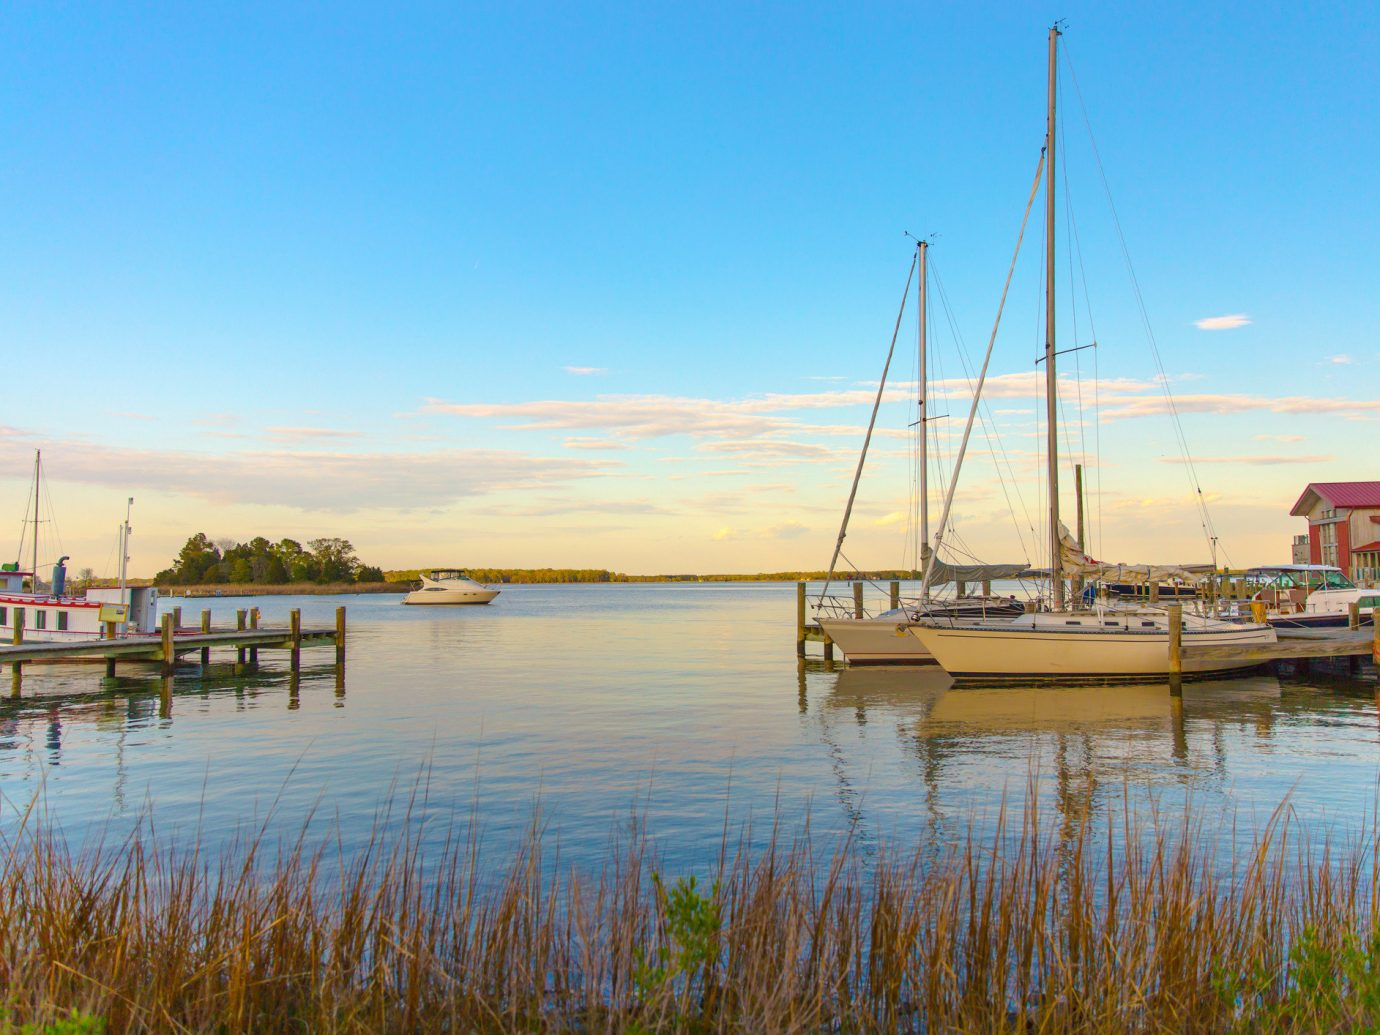 Romance Trip Ideas Weekend Getaways water outdoor sky Boat Nature reflection waterway marina calm scene evening morning Harbor Lake River dock loch cloud Sea shore tree horizon dawn wetland landscape docked reservoir lake district Sunset dusk bay tourism inlet Coast sunrise day tied